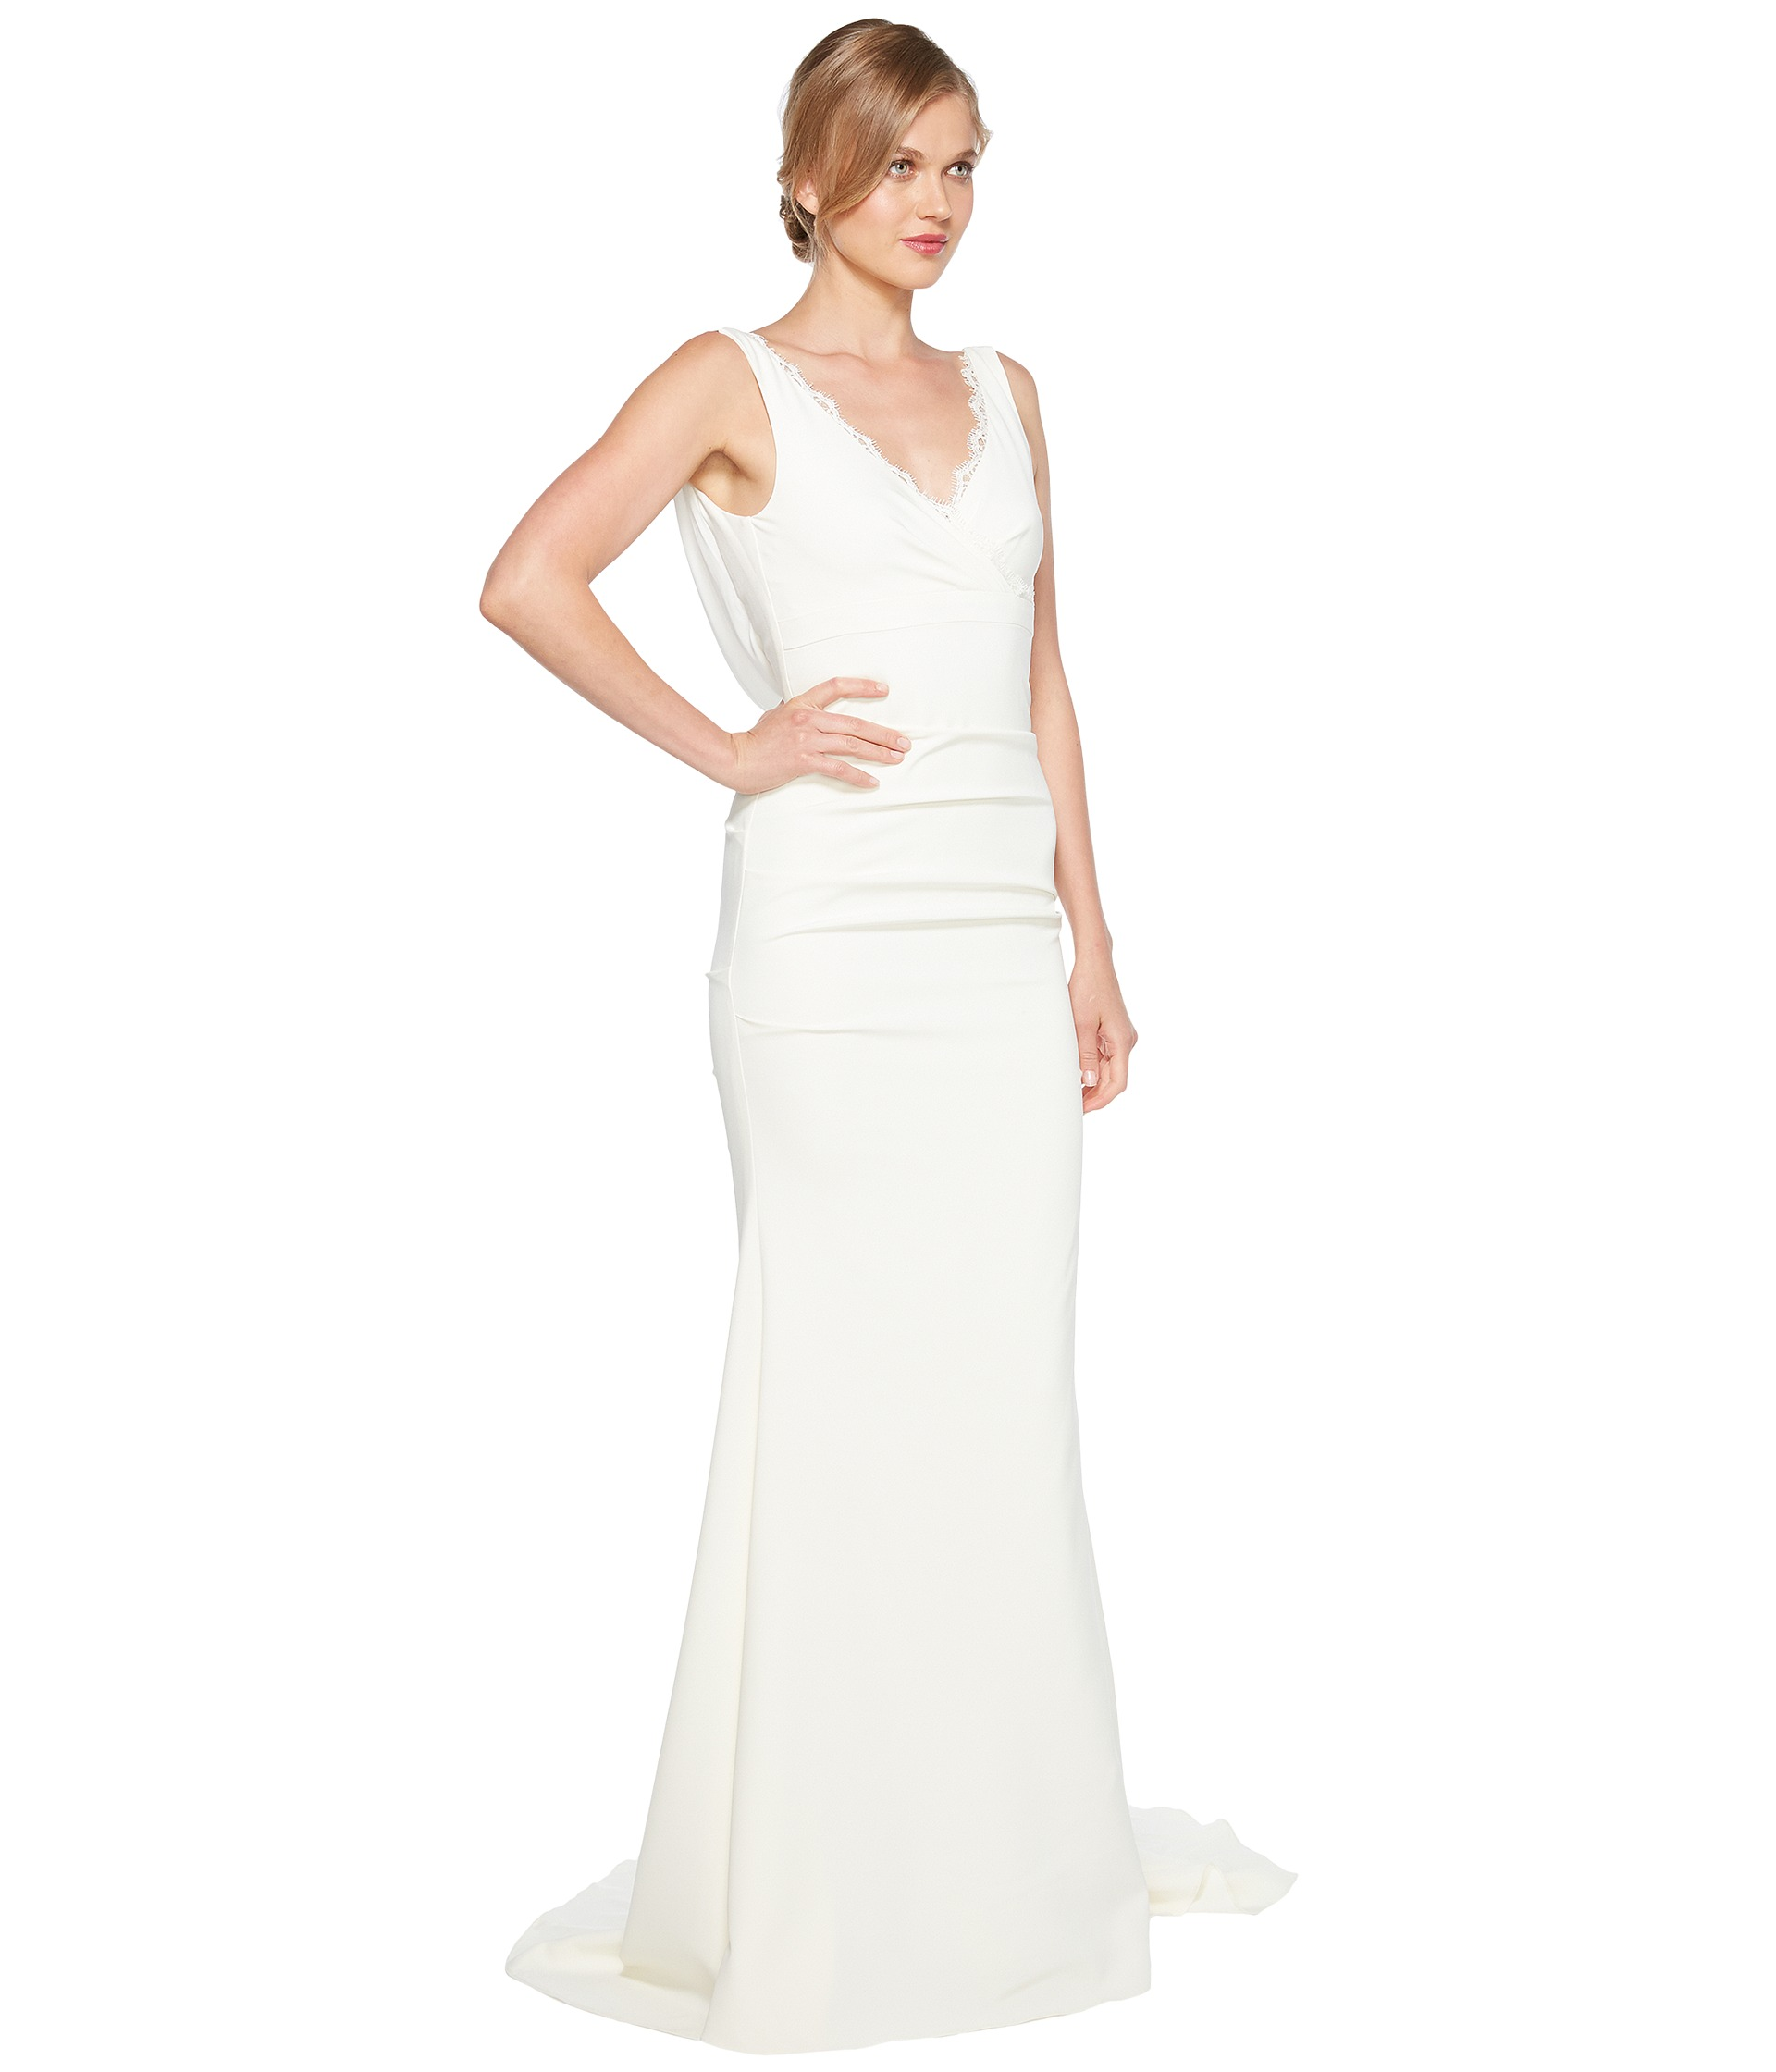 Nicole miller bridesmaid dresses bridesmaid dresses for Nicole miller wedding dresses nordstrom